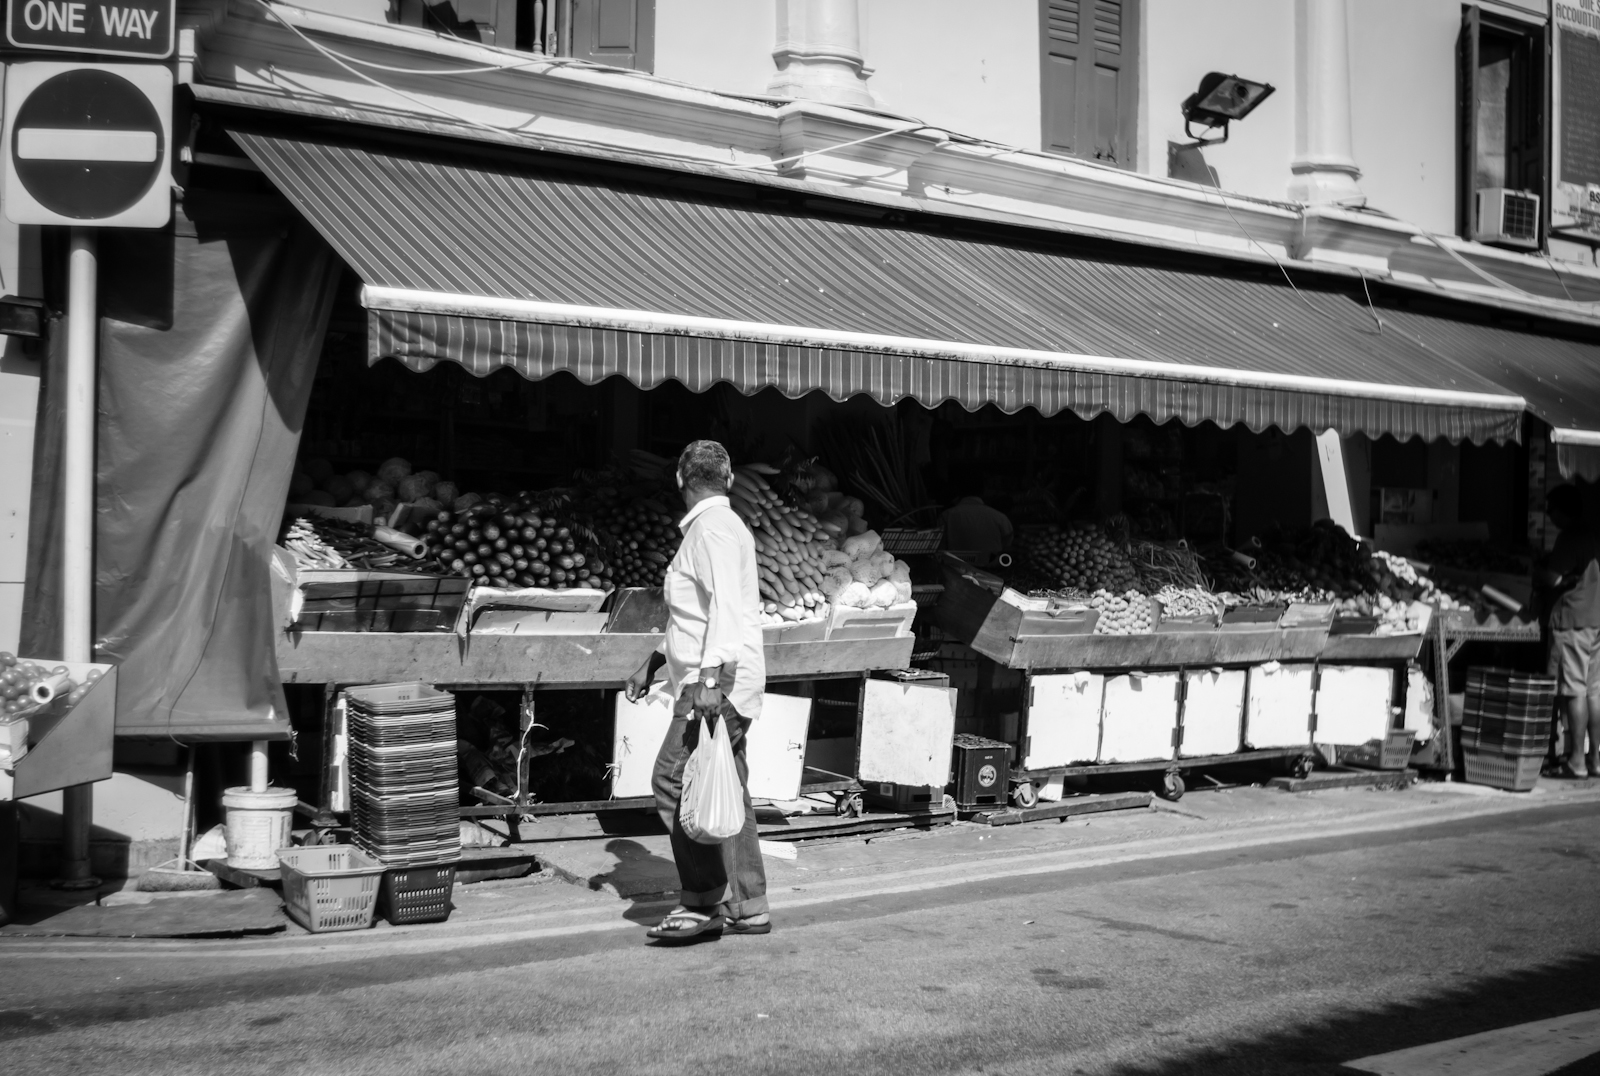 Street photography - Fruits stall